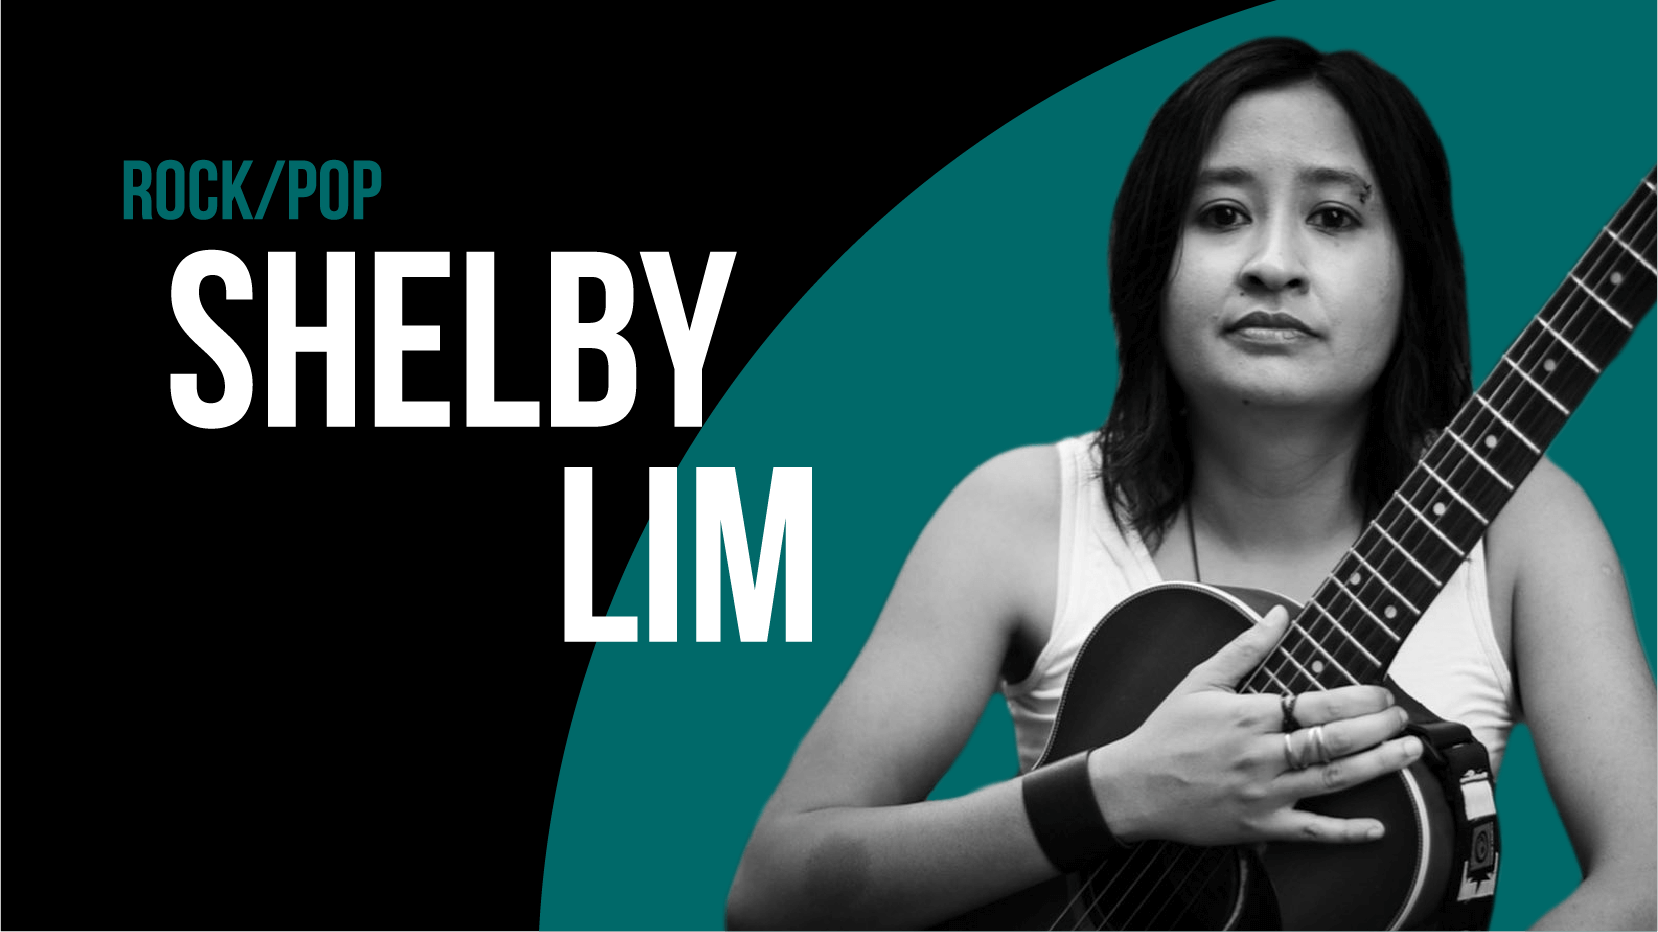 Shelby Lim Saturday 26 December 2020